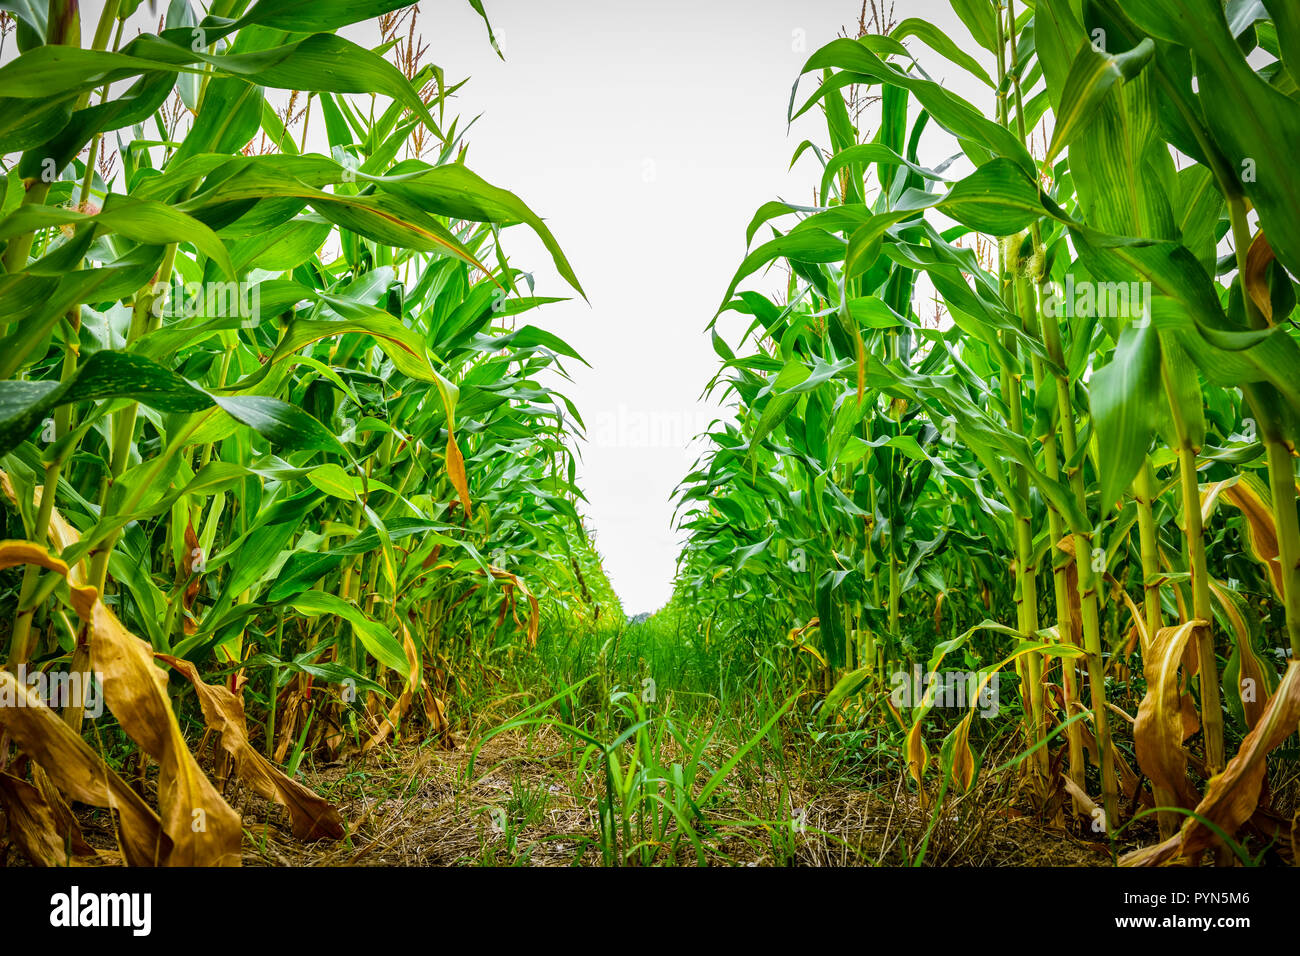 Corn field in Kirchwerder, Hamburg, Germany, Europe, Maisfeld in Kirchwerder, Deutschland, Europa - Stock Image